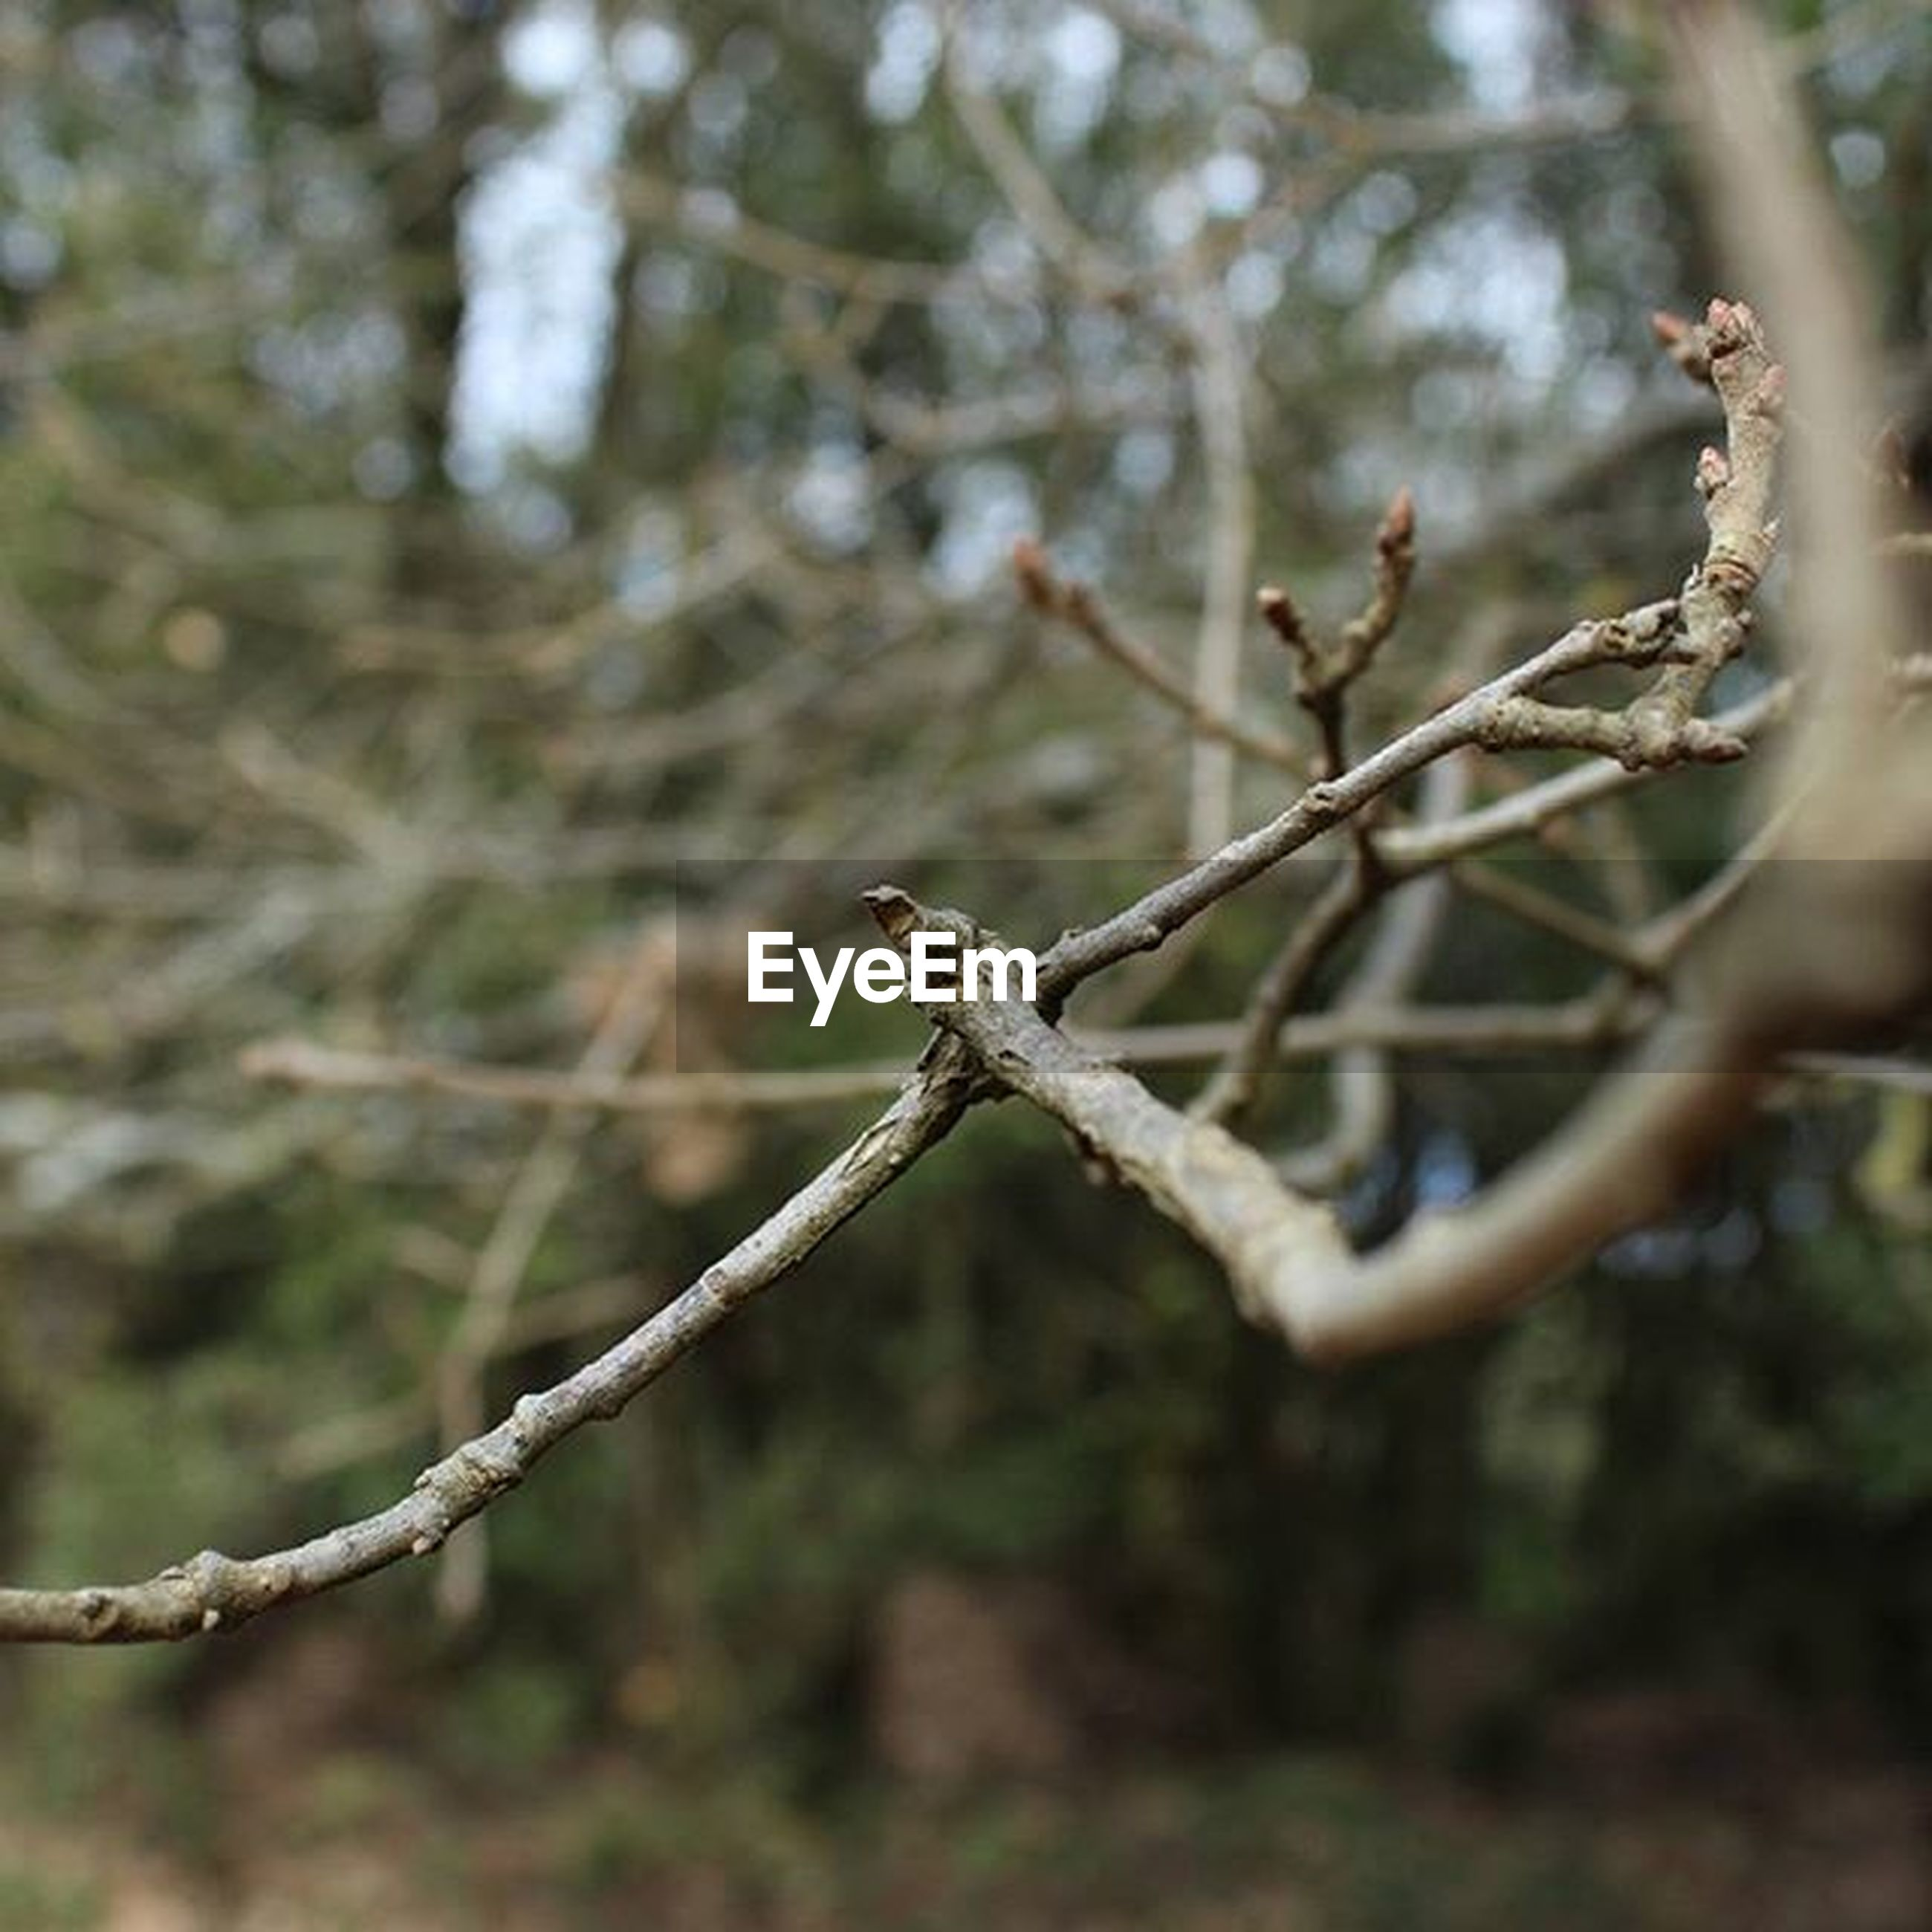 focus on foreground, branch, tree, close-up, twig, nature, tree trunk, selective focus, day, outdoors, growth, tranquility, forest, no people, beauty in nature, dead plant, dry, stem, plant, barbed wire